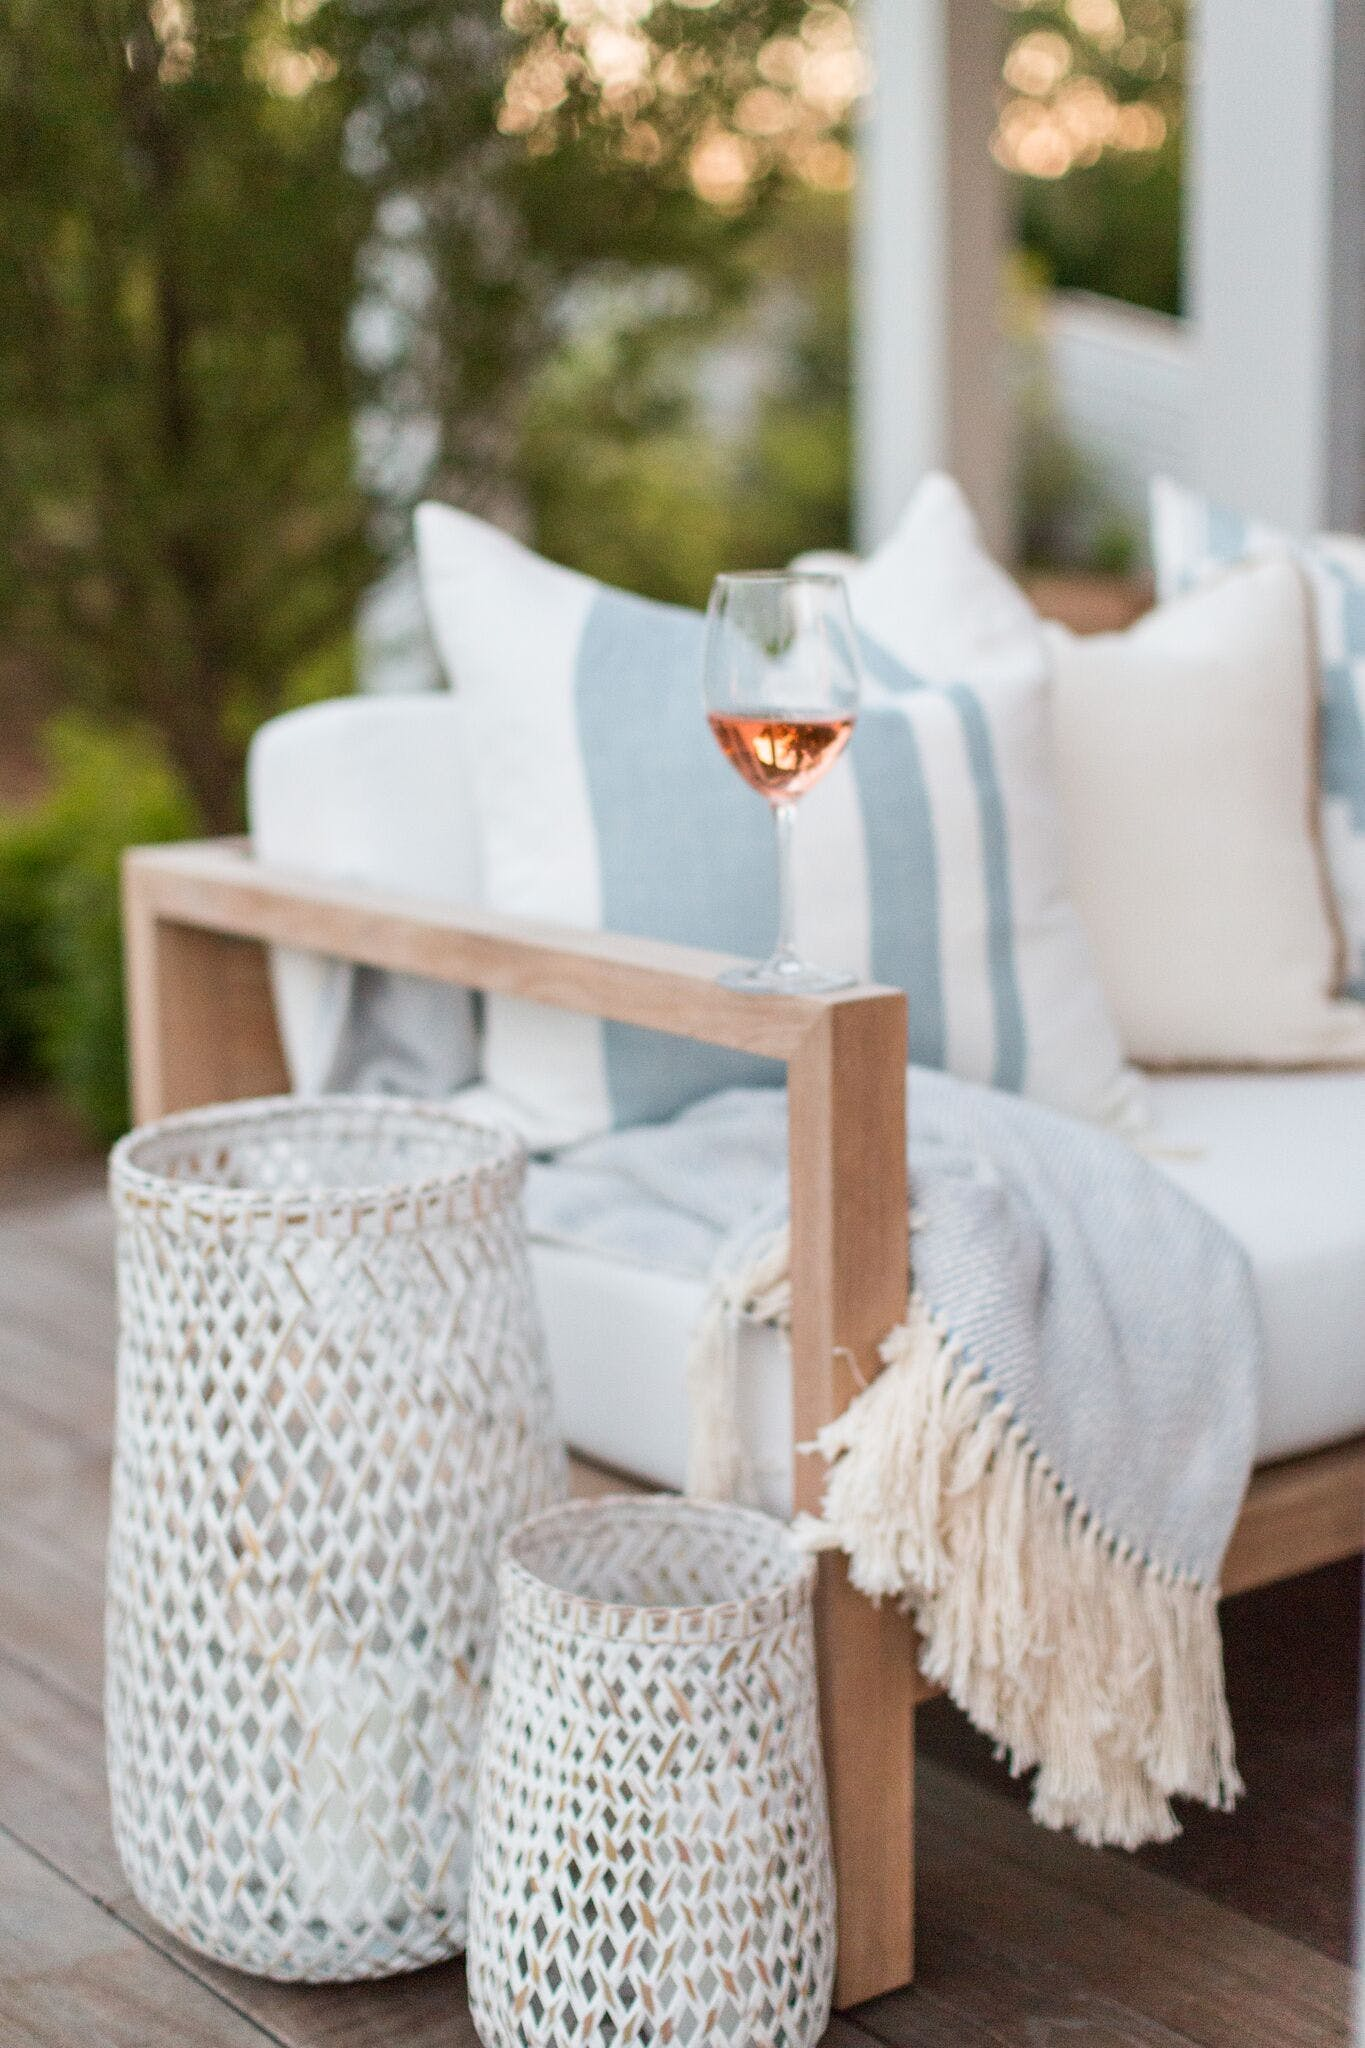 10 Garden Party Ideas That You Should Consider - PureWow